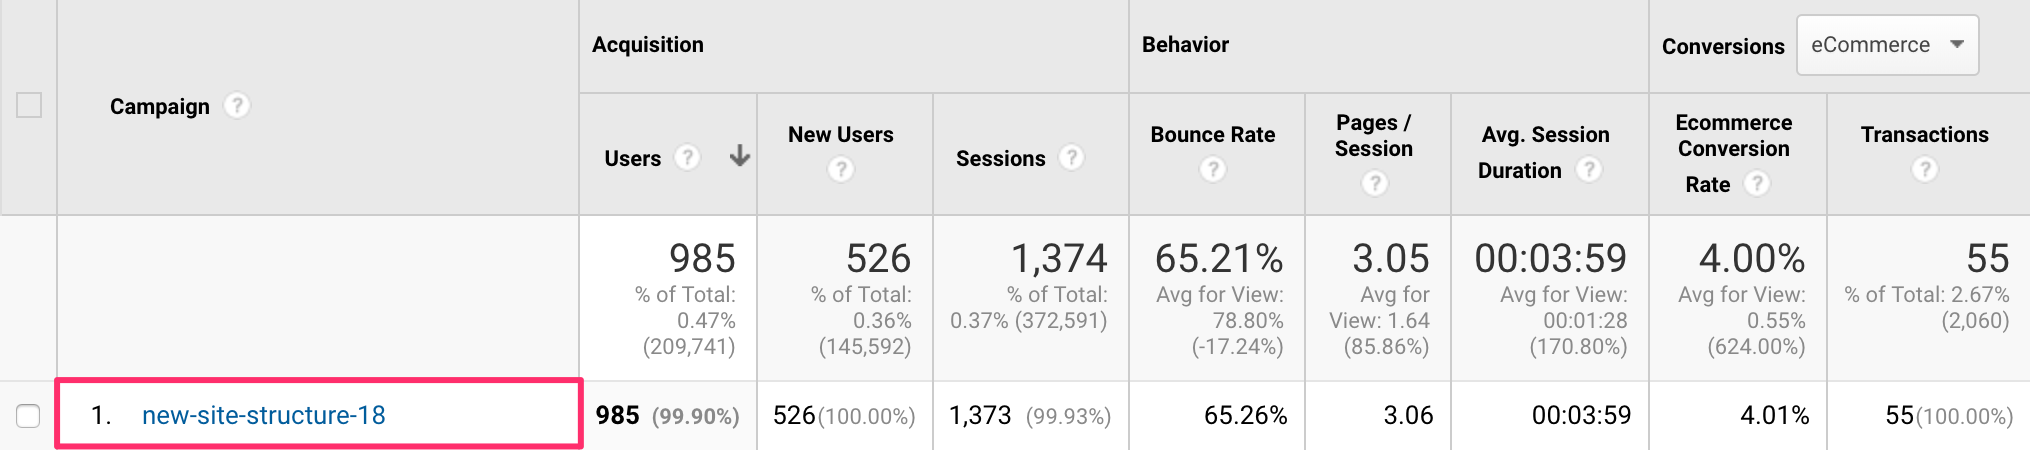 Campagnes in Google Analytics